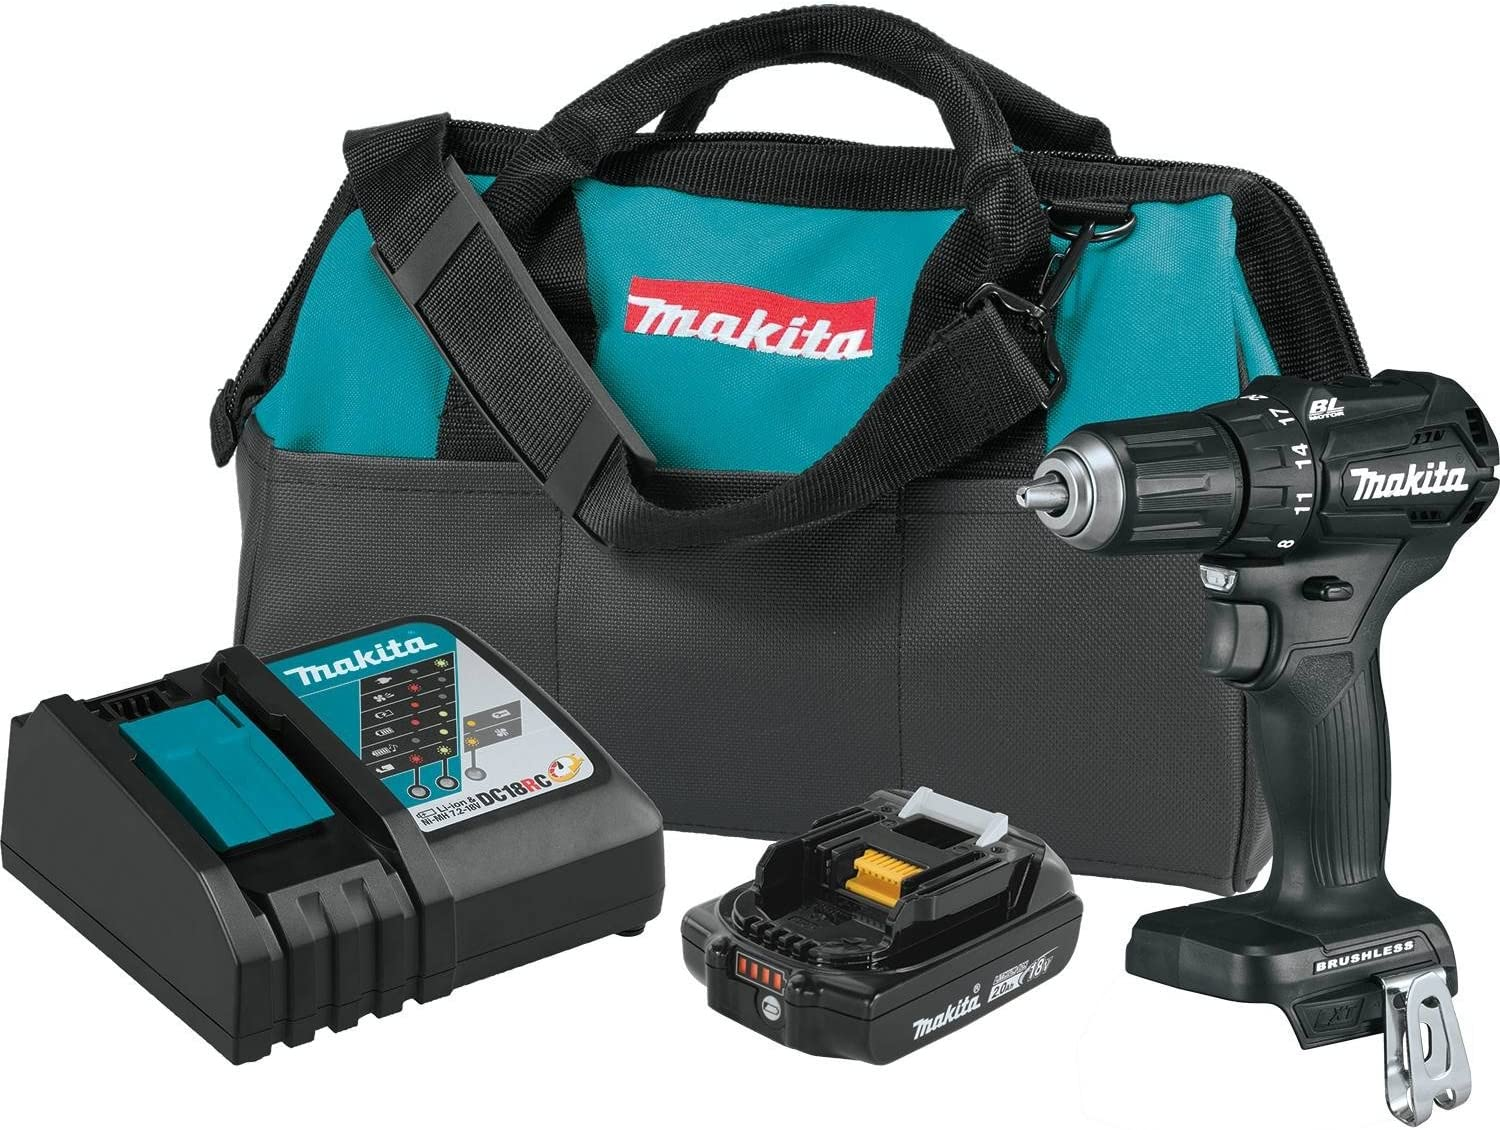 Makita XFD11R1B 18V LXT Lithium-Ion Sub-Compact Brushless Cordless 1 2 Driver-Drill Kit 2.0Ah